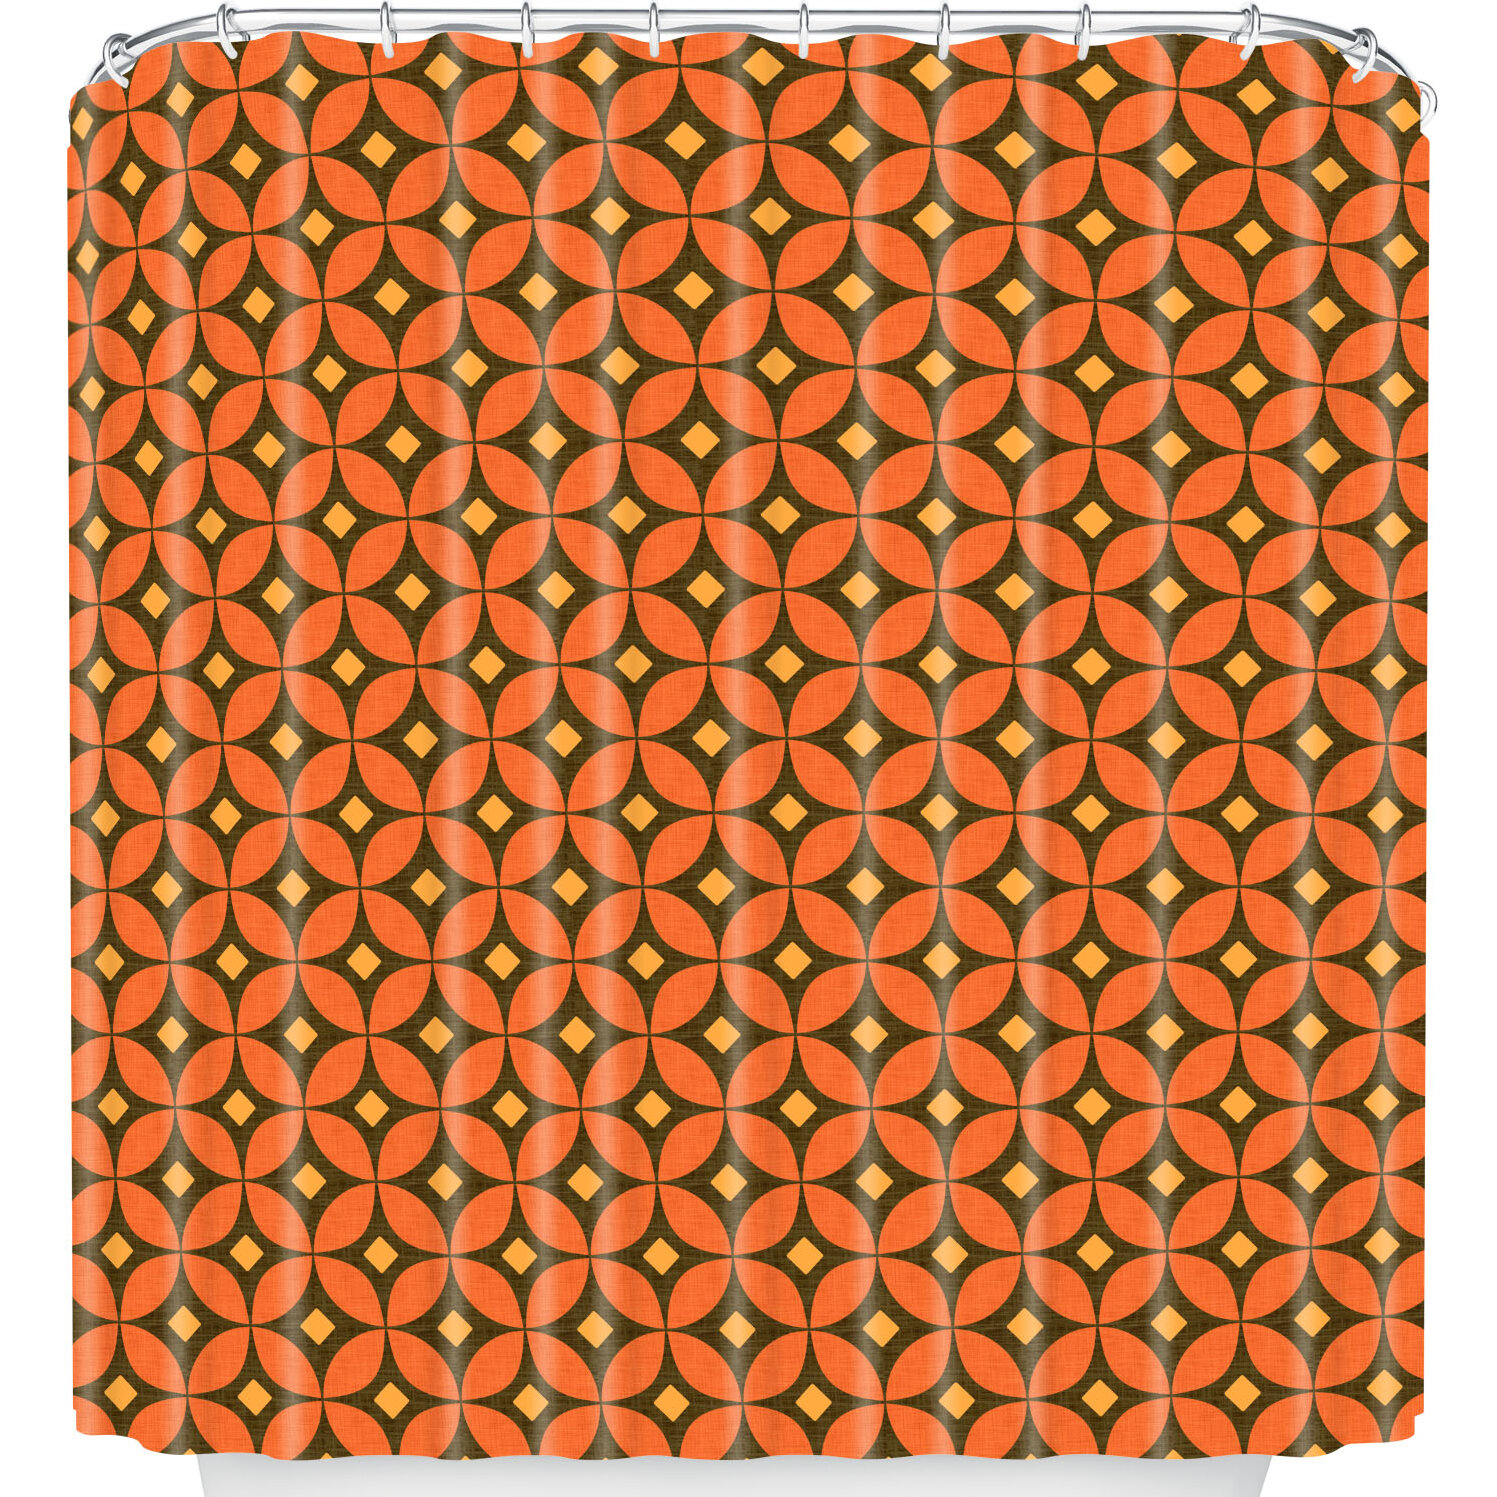 East Urban Home Pumpkin Spice Shower Curtain